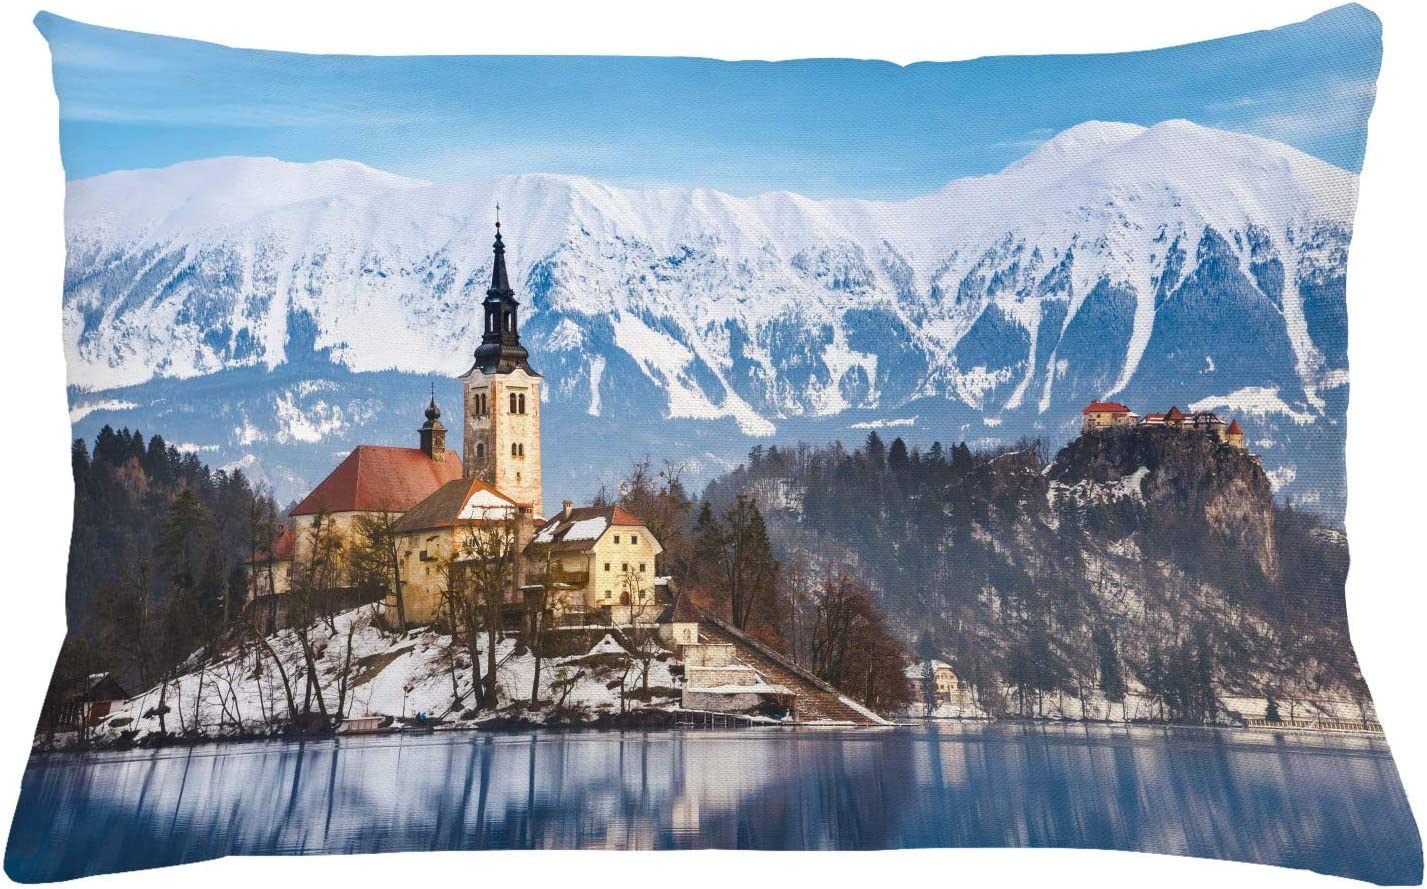 Amazon Com Ambesonne Winter Throw Pillow Cushion Cover Lake Bled In Slovenia Scenes From Europe Travel Destination Places Photo Decorative Rectangle Accent Pillow Case 26 X 16 Multicolor Home Kitchen